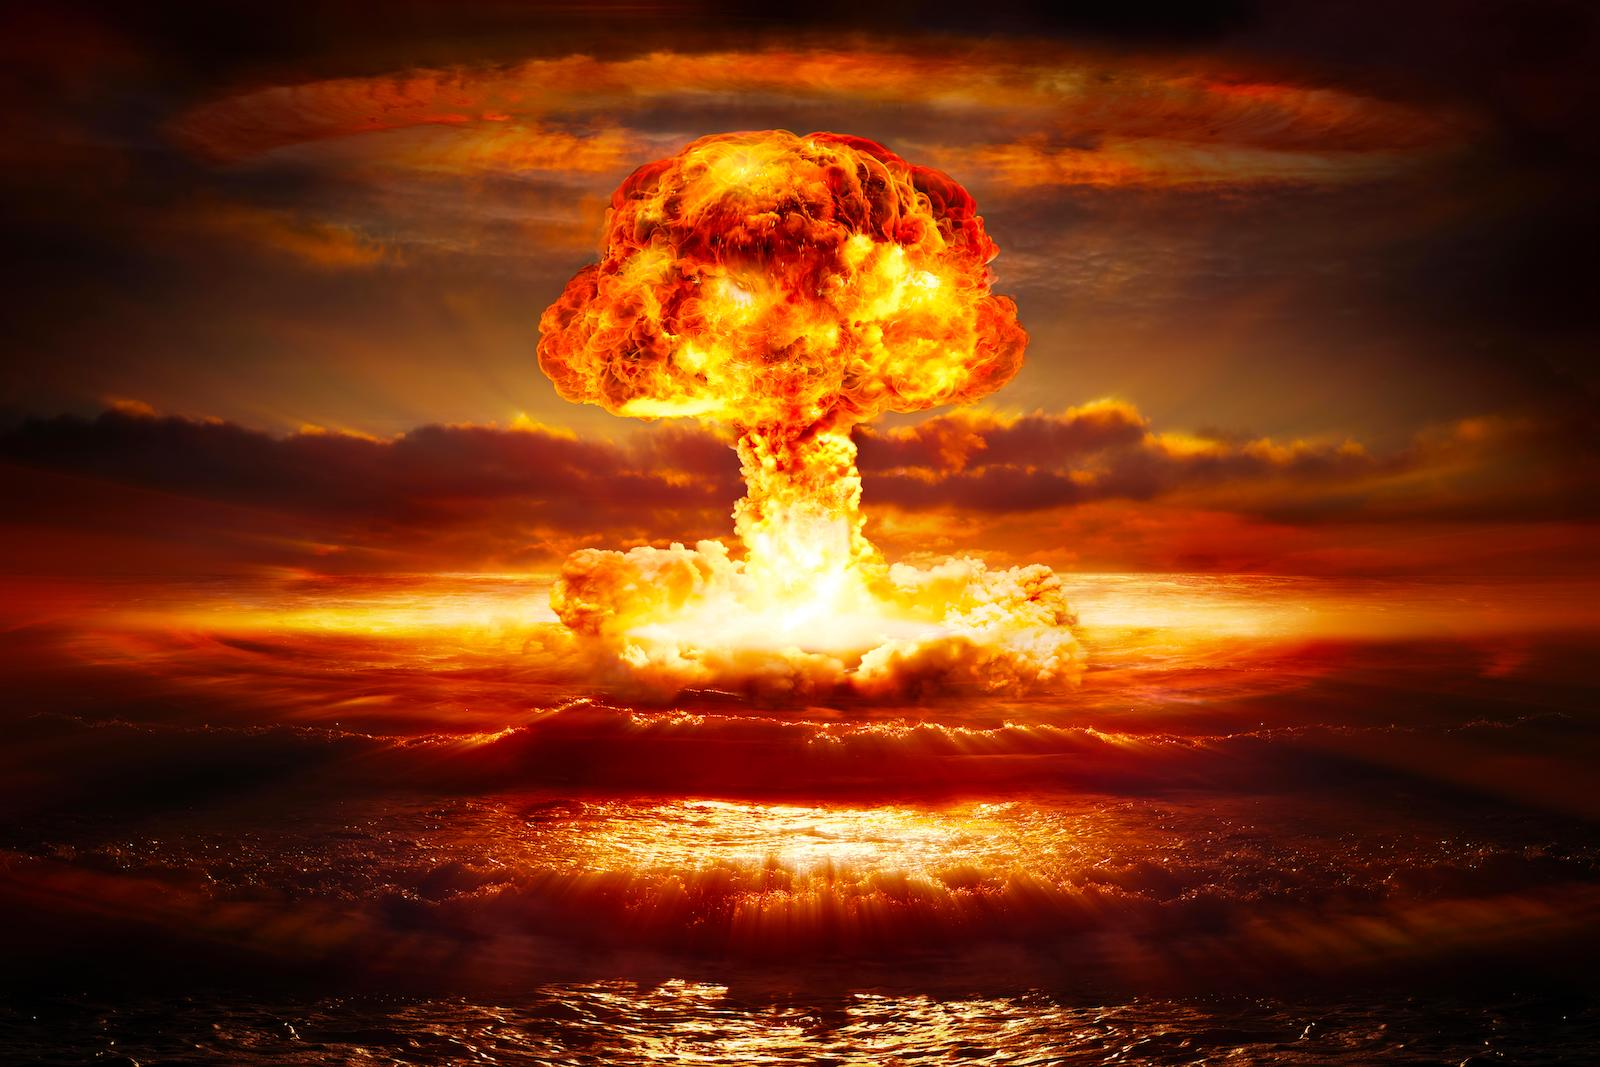 Nuclear explosion going off in the ocean creating a mushroom cloud